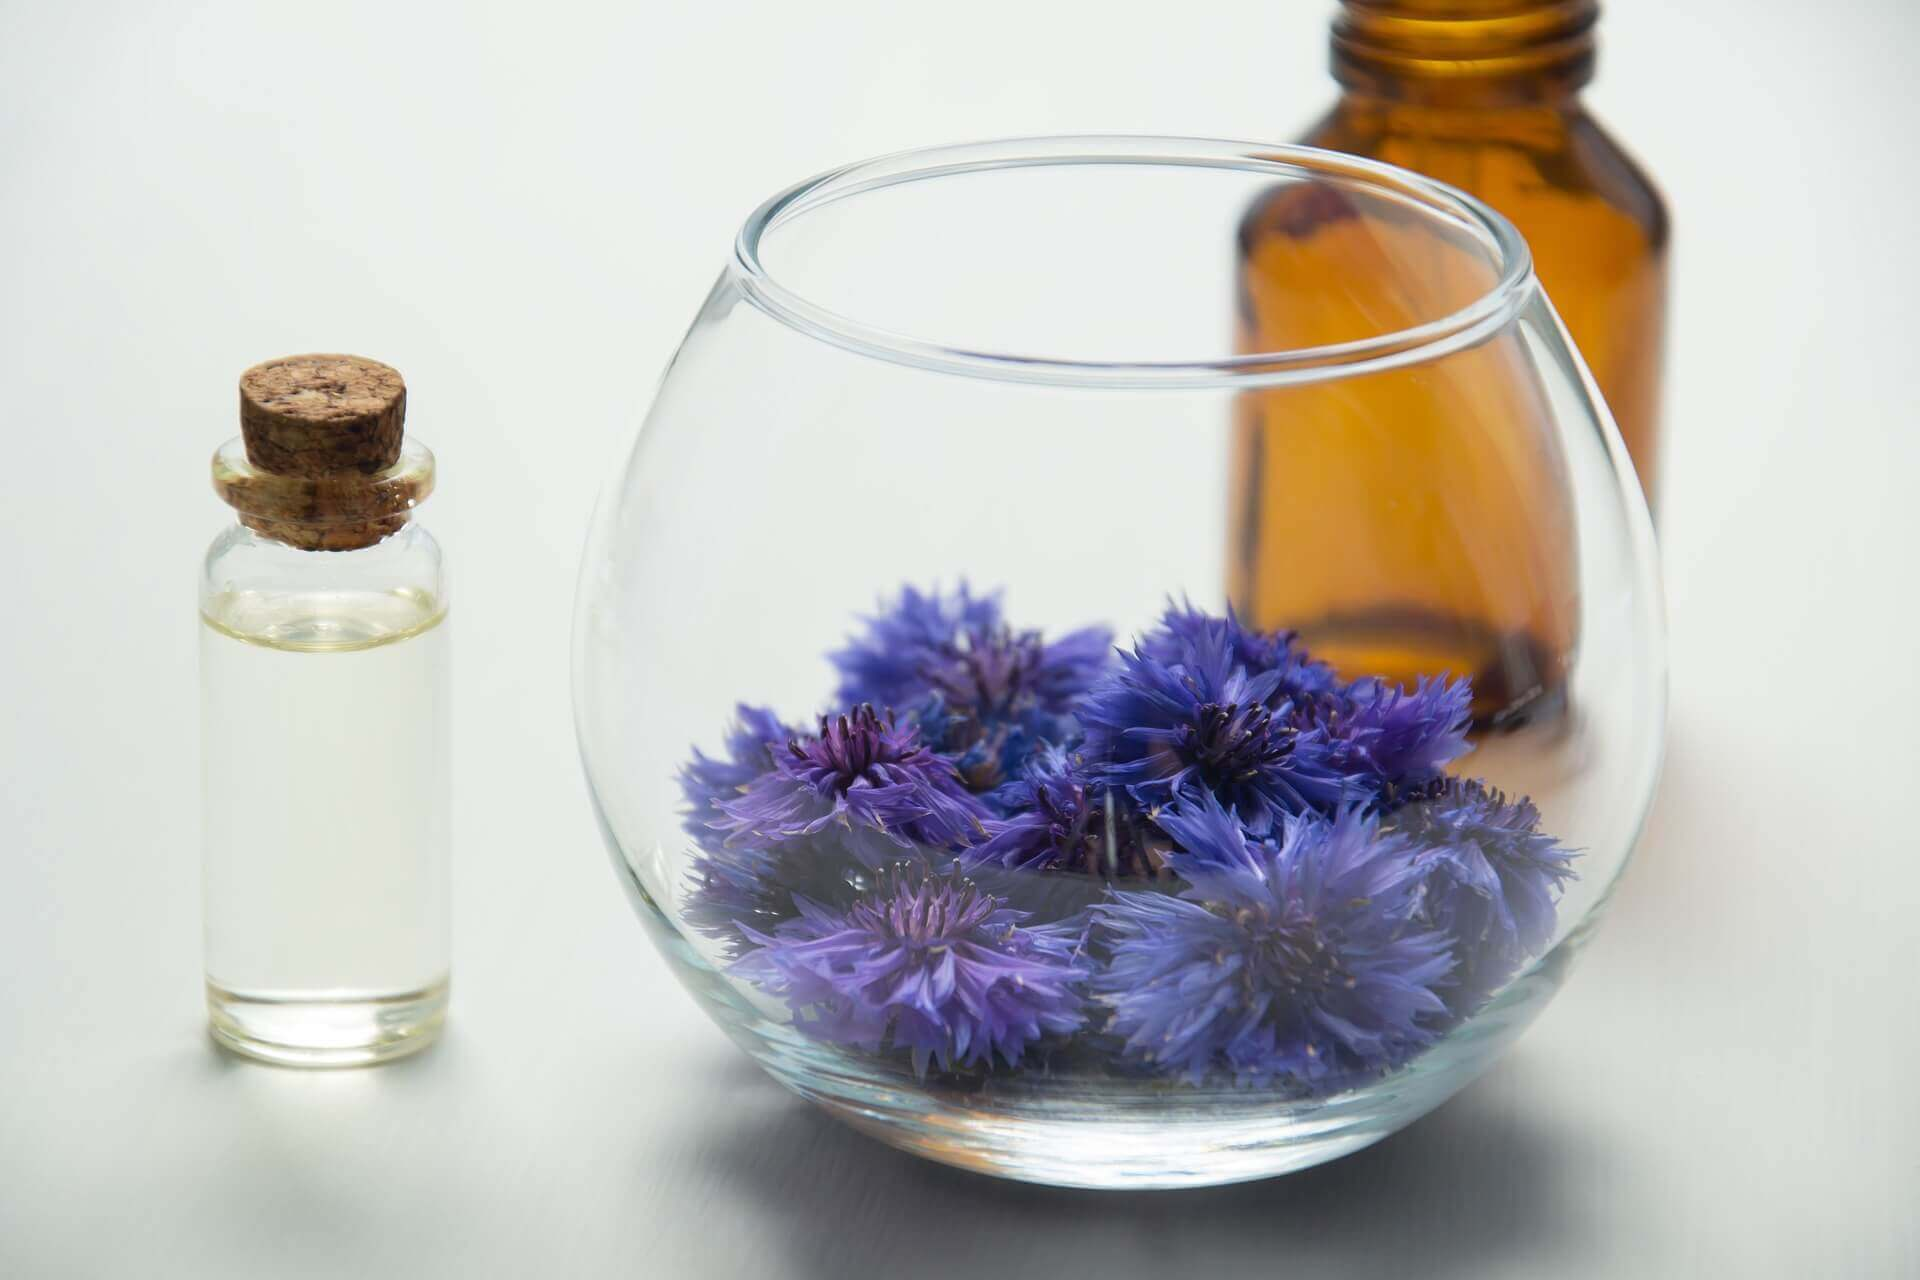 Essential Oils Is So Famous, But Why? #essentialoils #doterra #natural #aromatherapy #youngliving #wellness #lavender #oil #anxiety #healing #meditation #peace #gift #skin: Essential oils uses, List of essential oils,essential oils benefits, essential oils good for skin, 10 рорulаr еѕѕеntіаl оіlѕ,essential oils and pregnancy,essential oils diffuser, essential oils headache, essential oils for sleep, essential oils for anxiety,essential oils anxiety, essential oils lavender,how to use essential oils,essential oils benefits